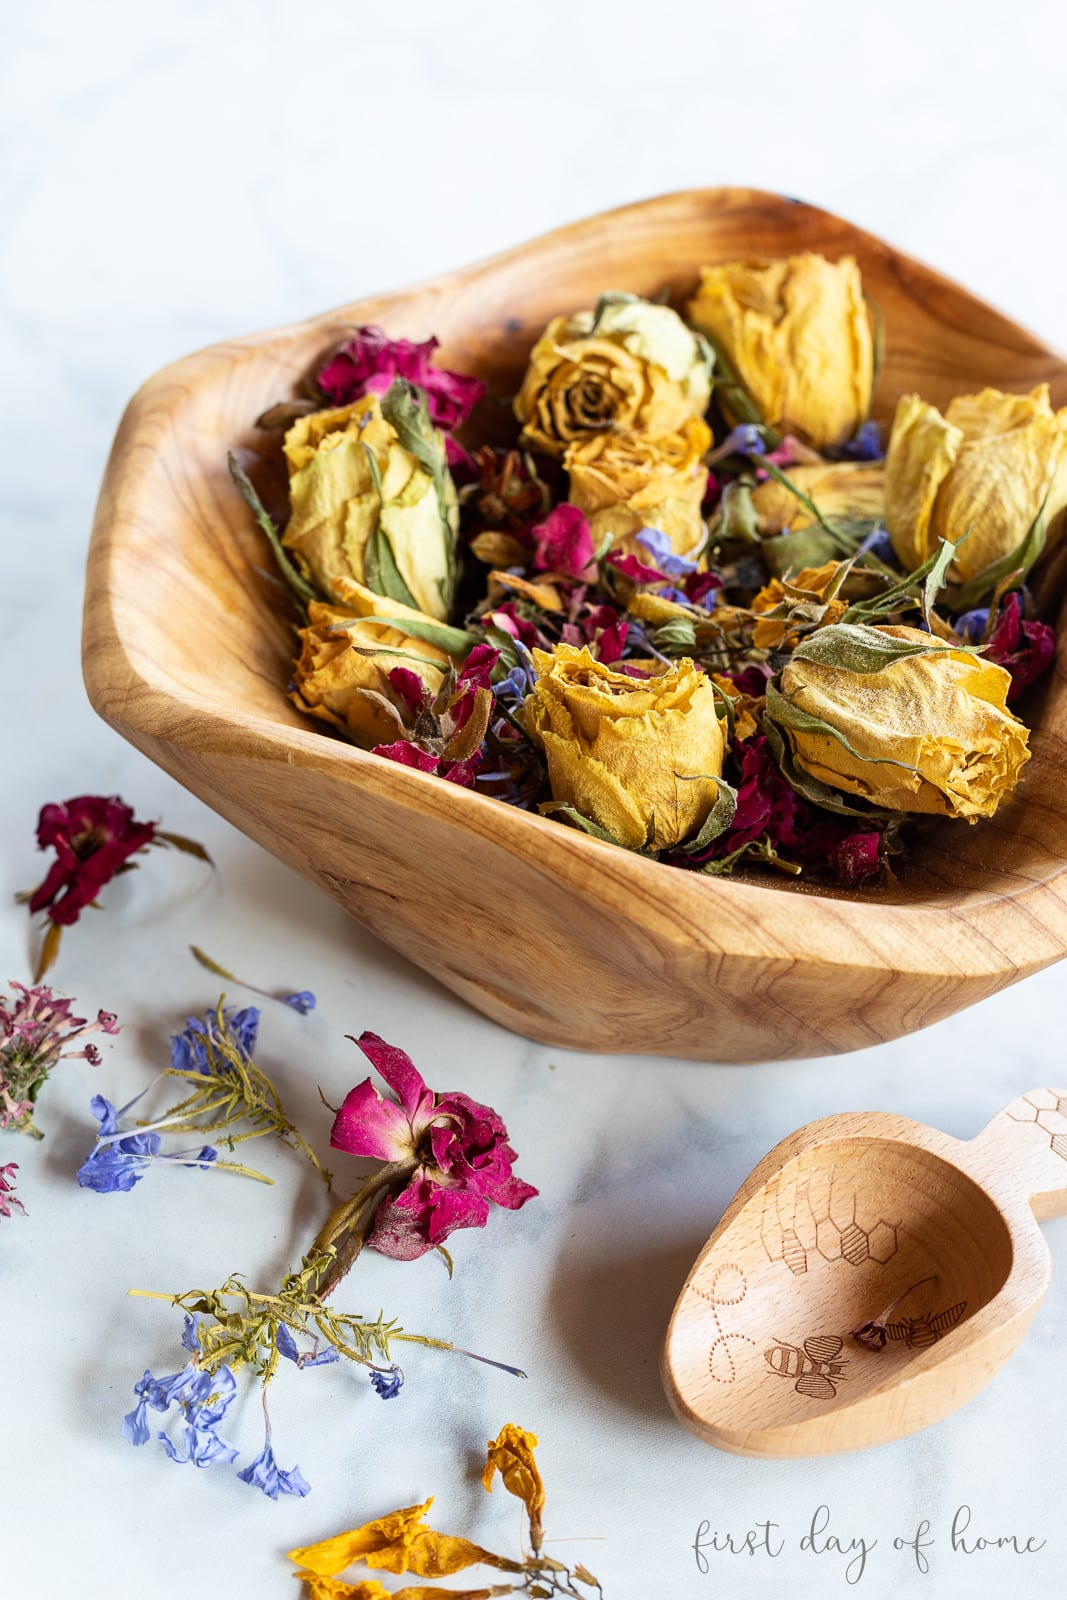 Dried flower potpourri in wooden bowl with wooden scoop